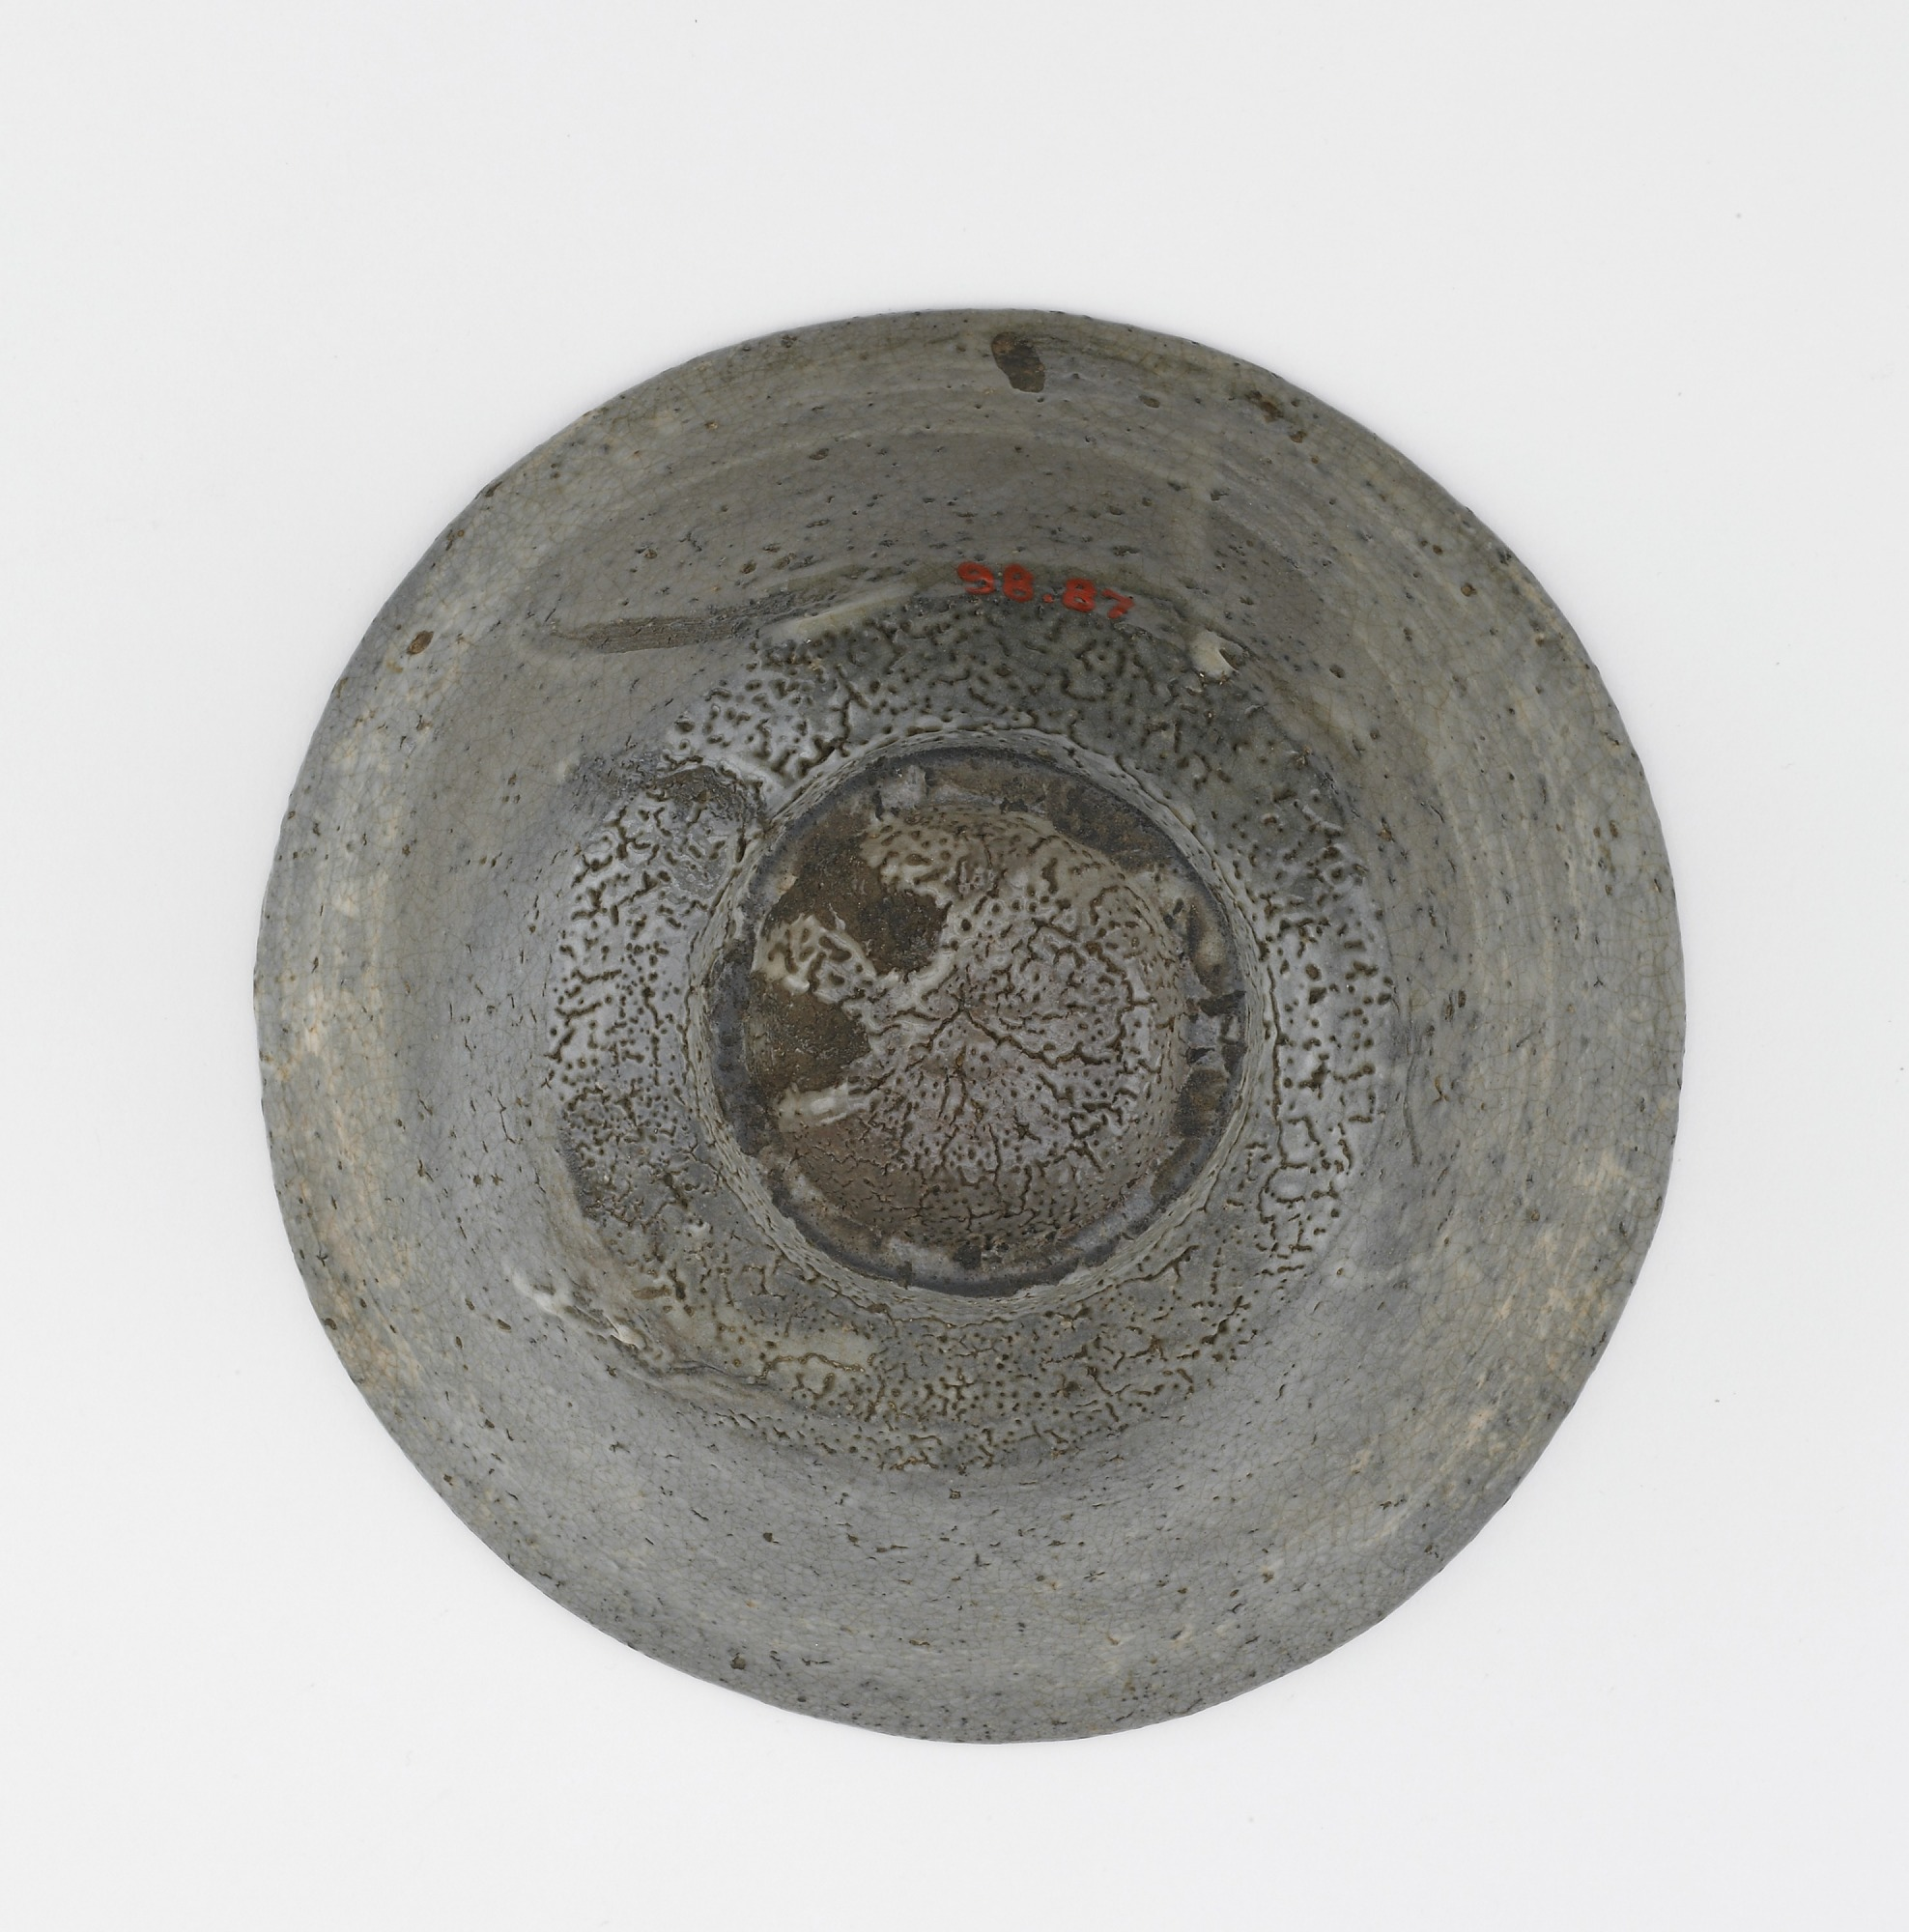 base: Tea bowl, Totoya type